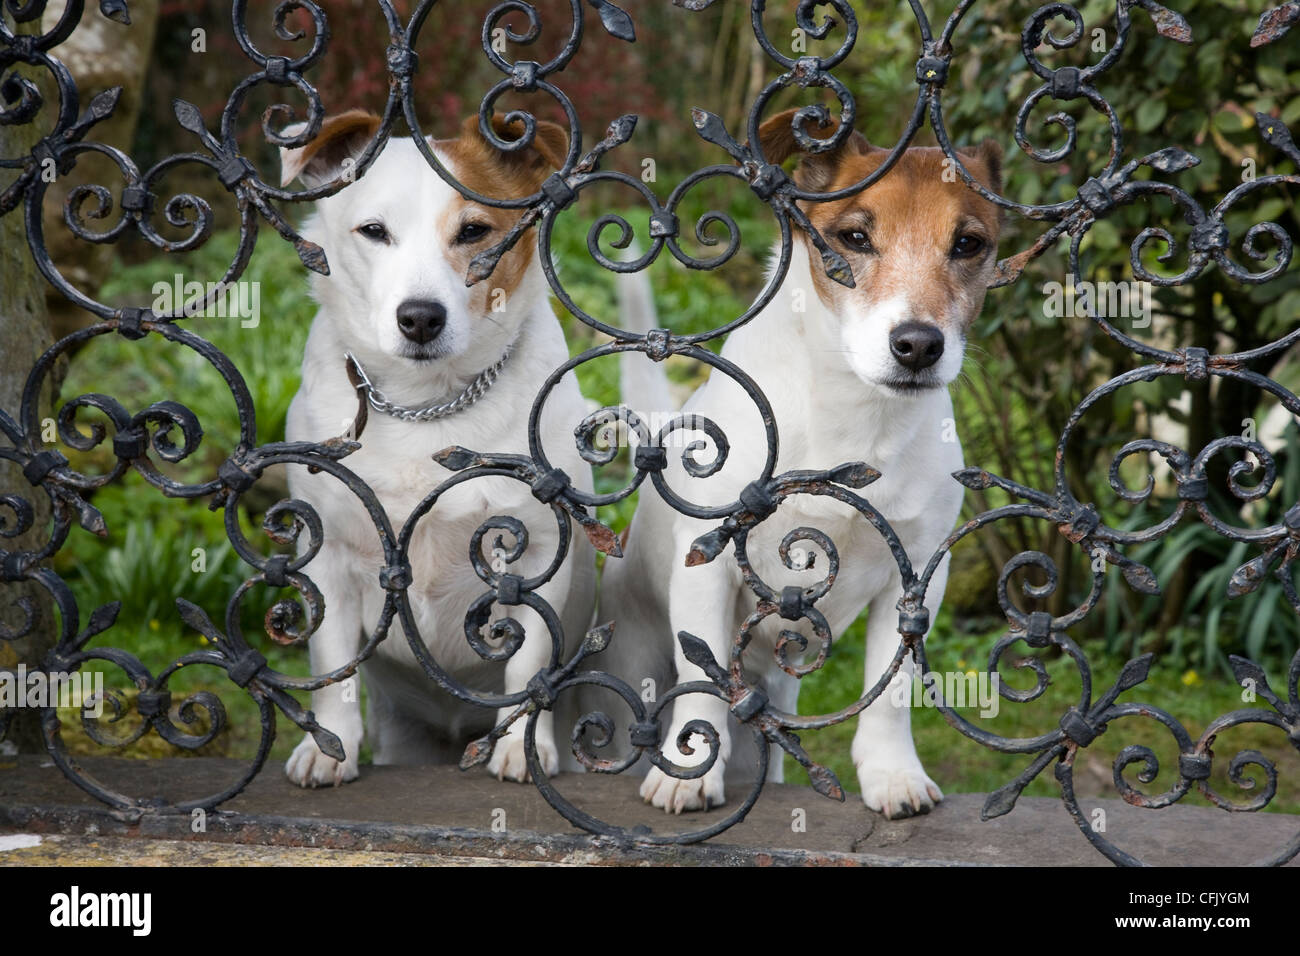 Stock Photo   Two Small Dogs Looking Through Wrought Iron Garden Fence  Railings